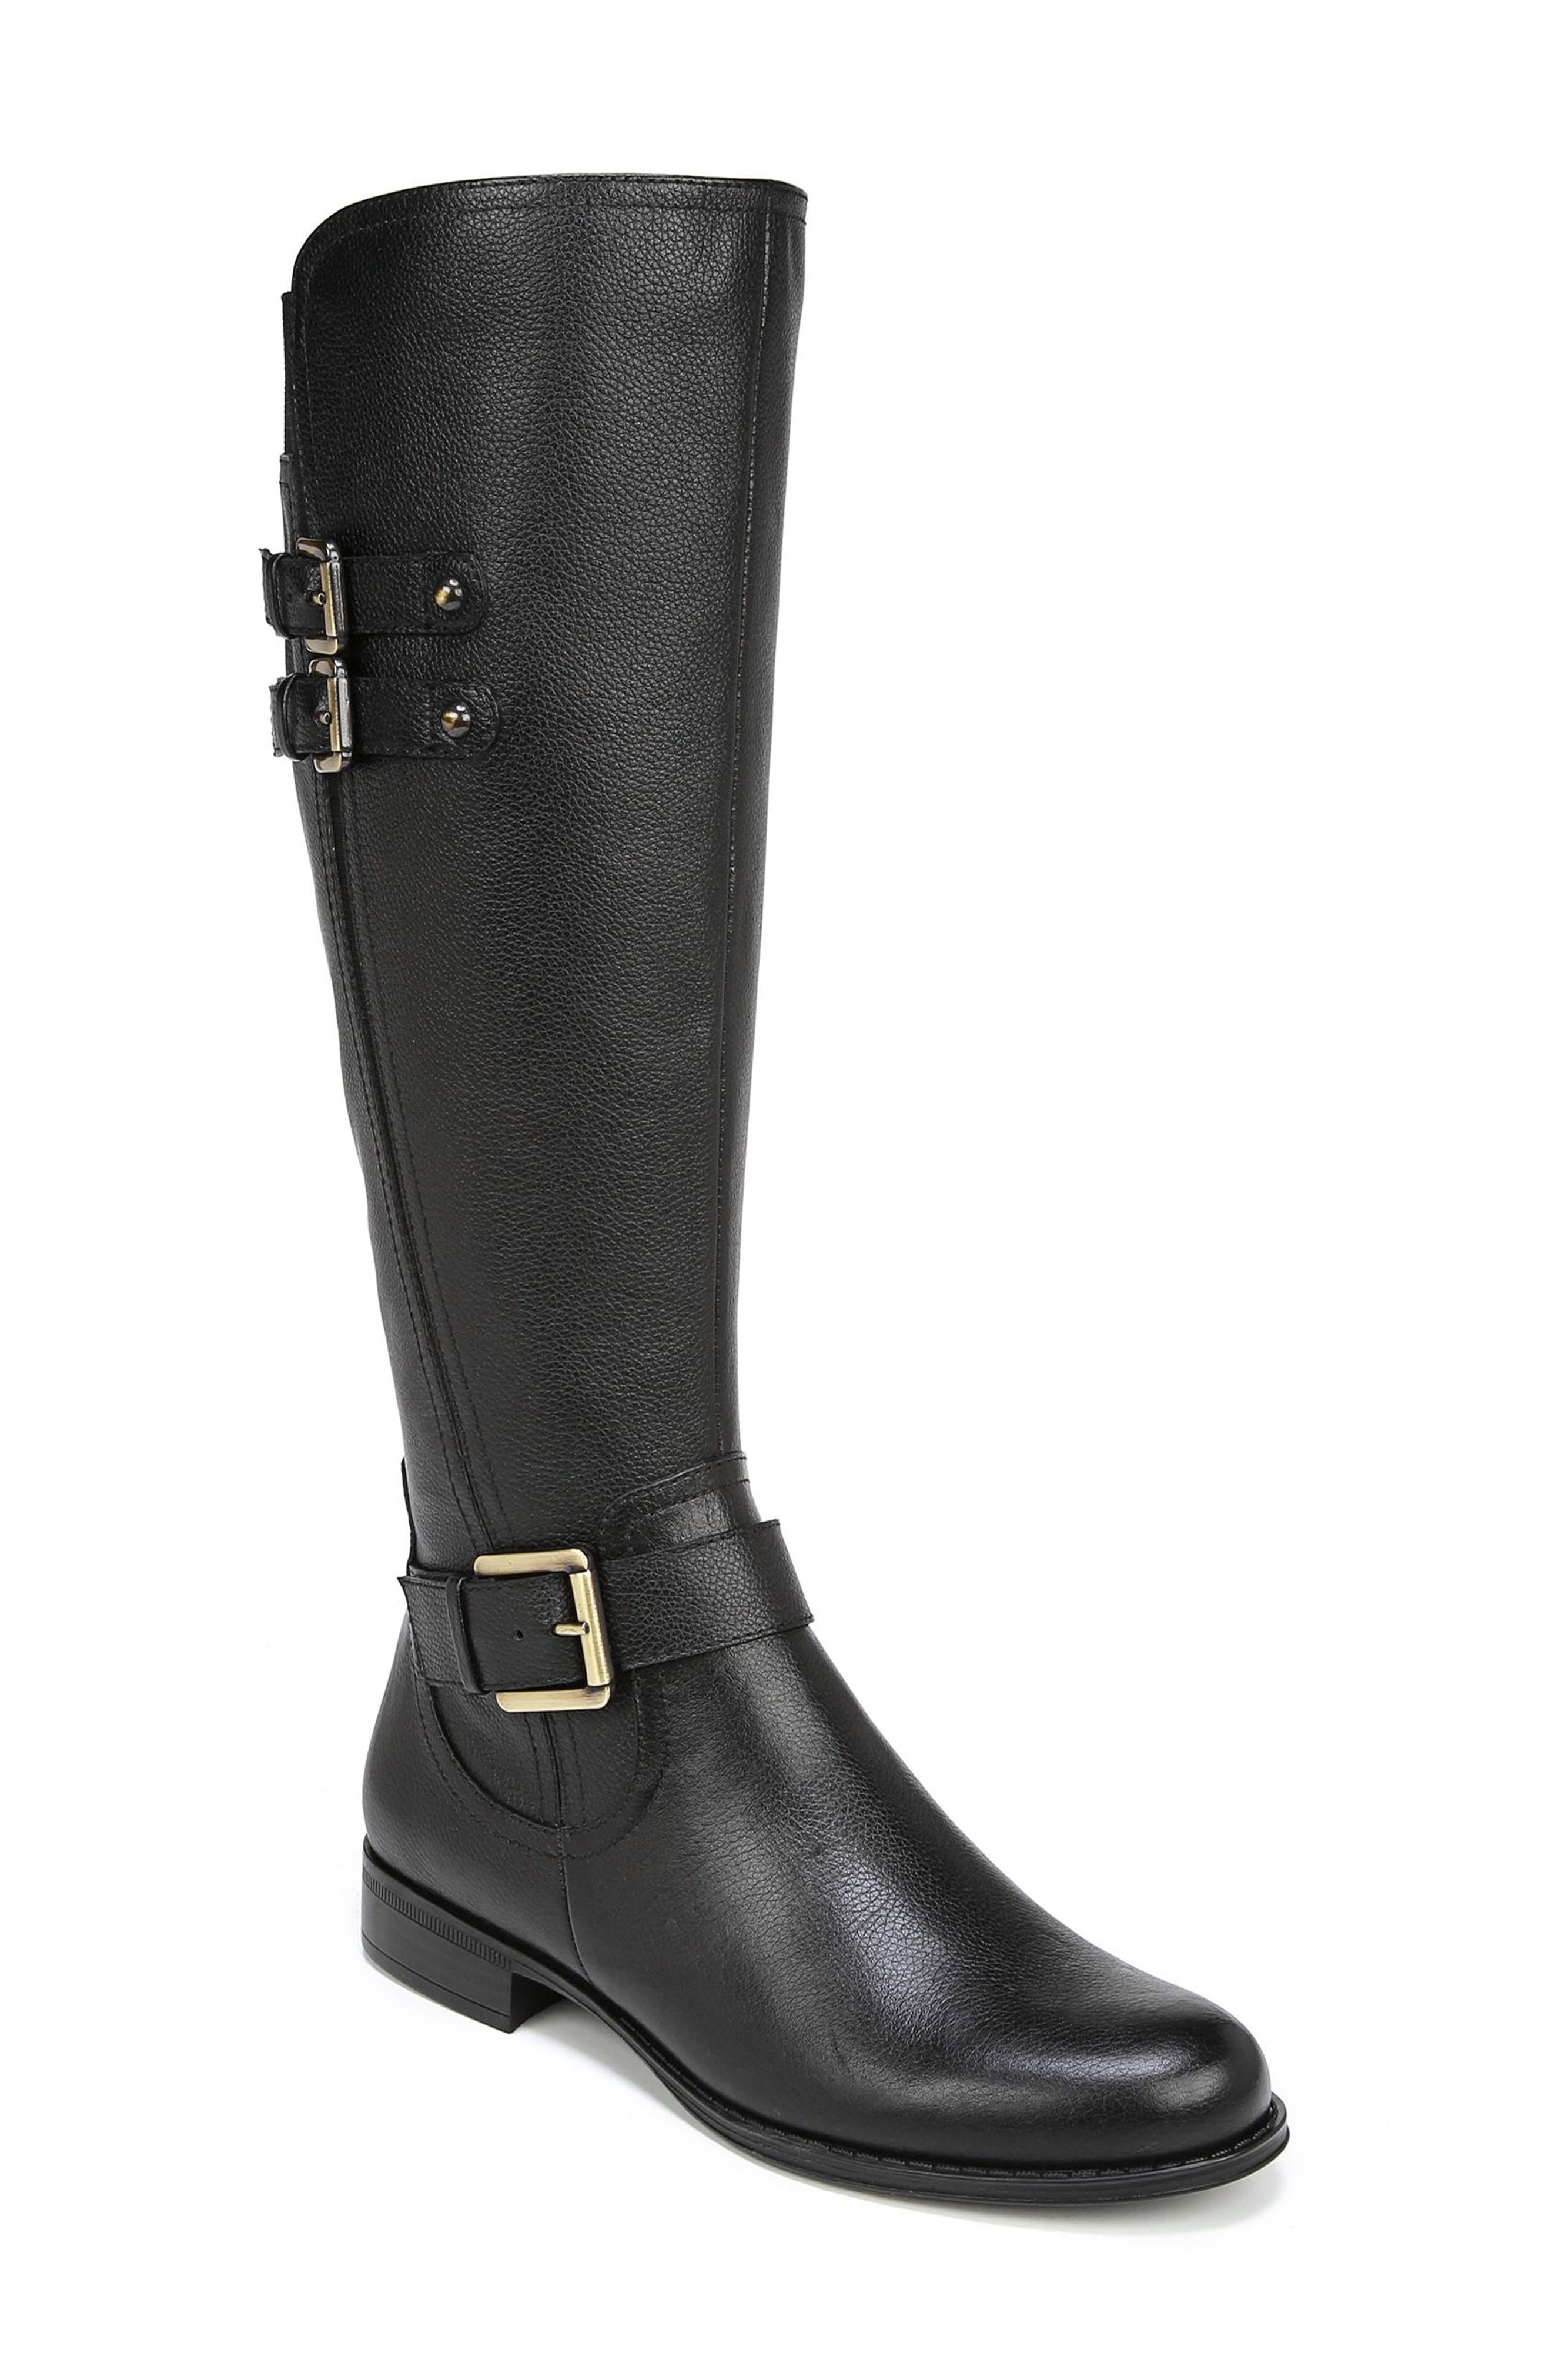 Womens Black riding boots